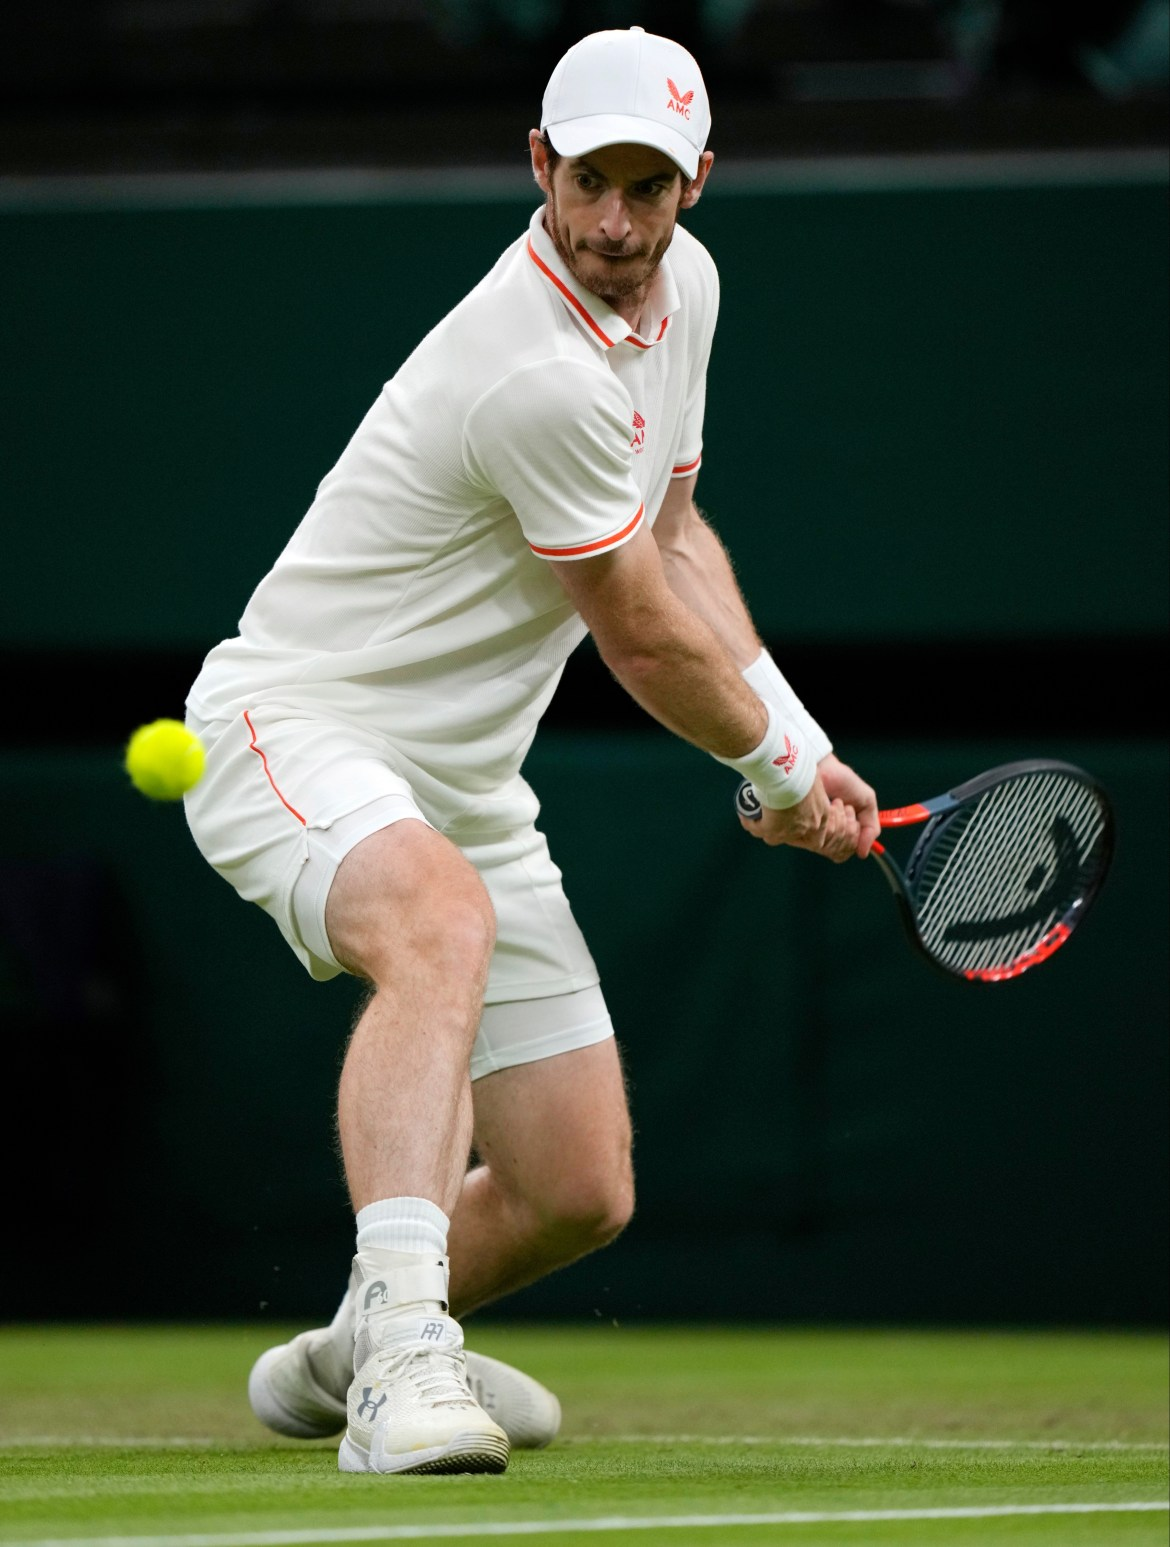 Ex-Wimbledon winner Andy Murray ground out another memorable performance